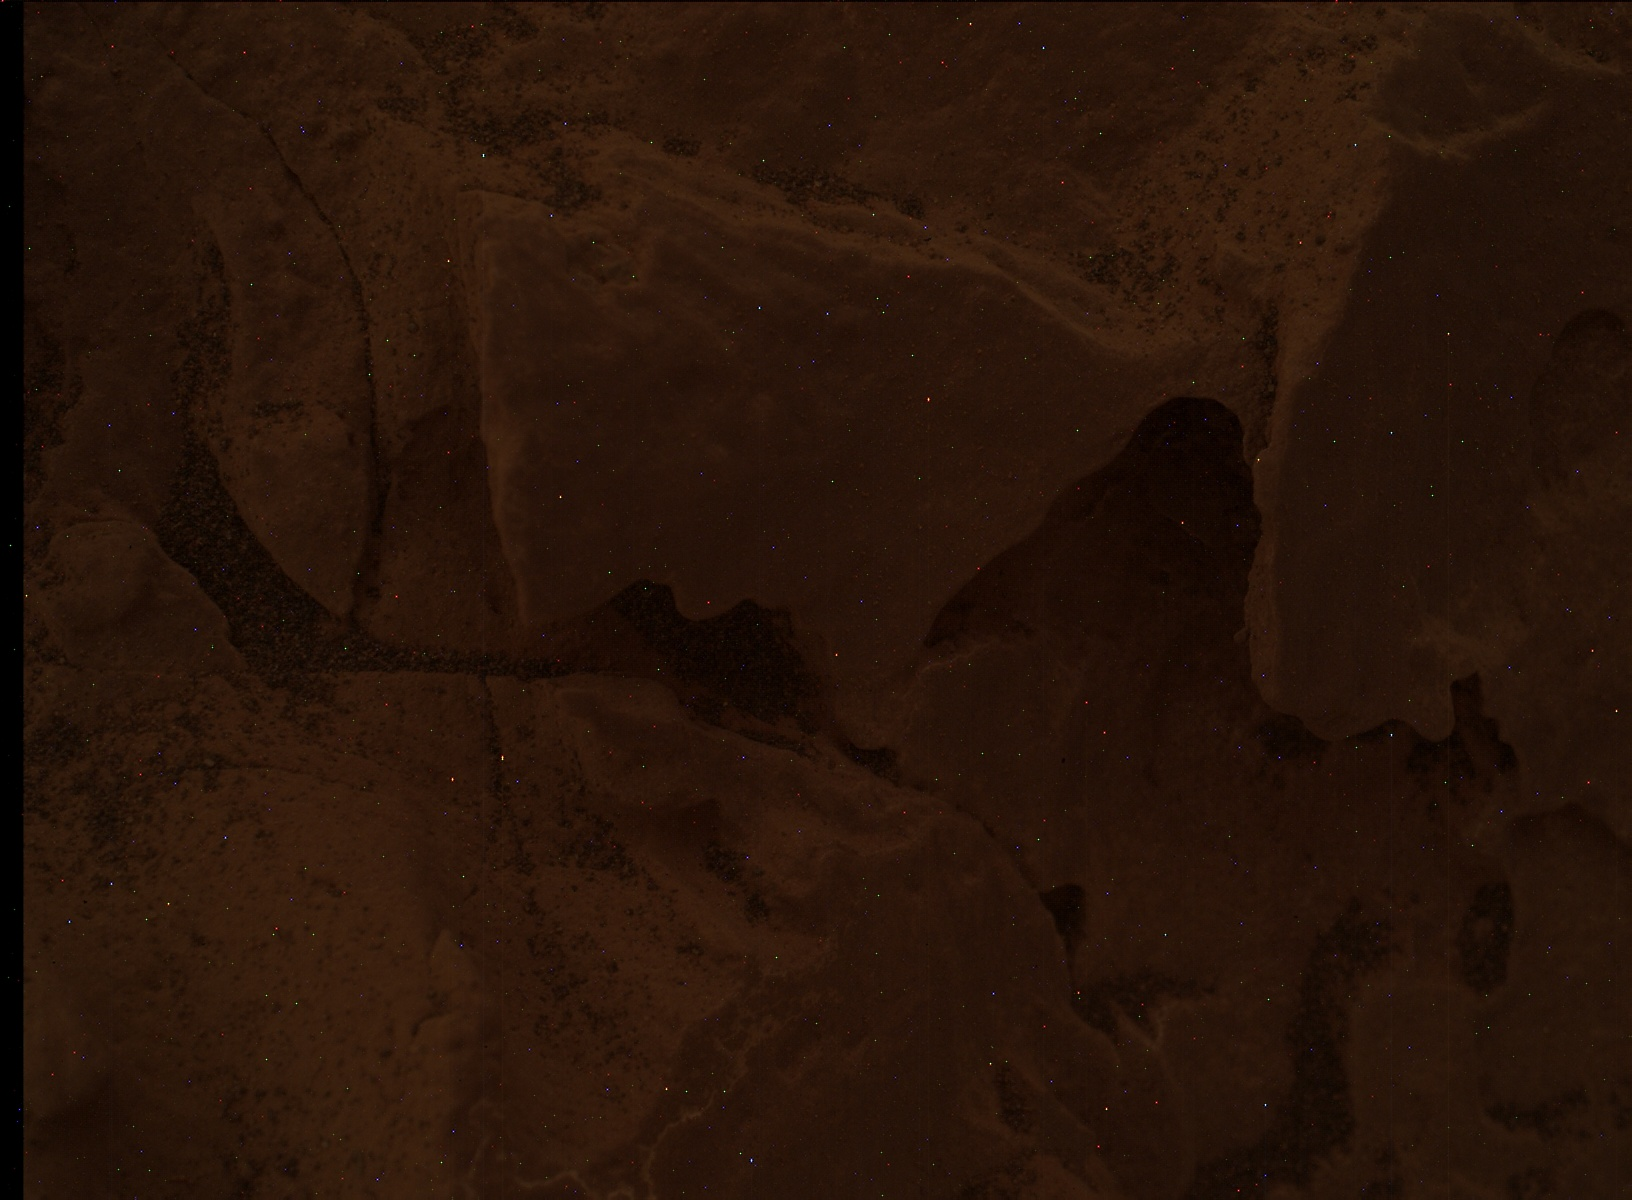 Nasa's Mars rover Curiosity acquired this image using its Mars Hand Lens Imager (MAHLI) on Sol 2083